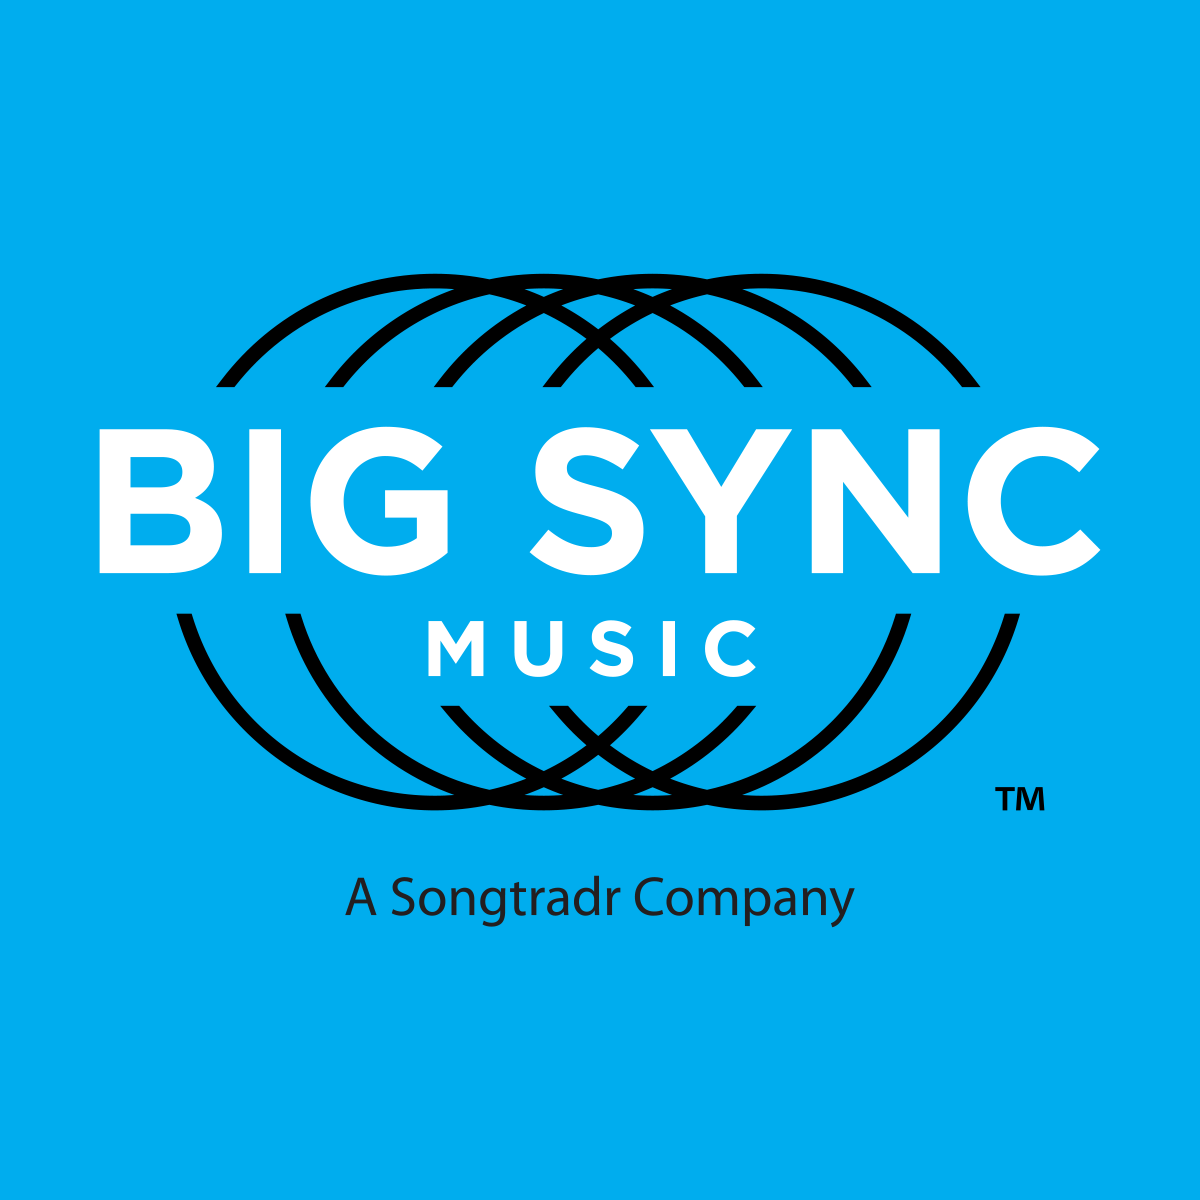 Global Expansion for Big Sync Music